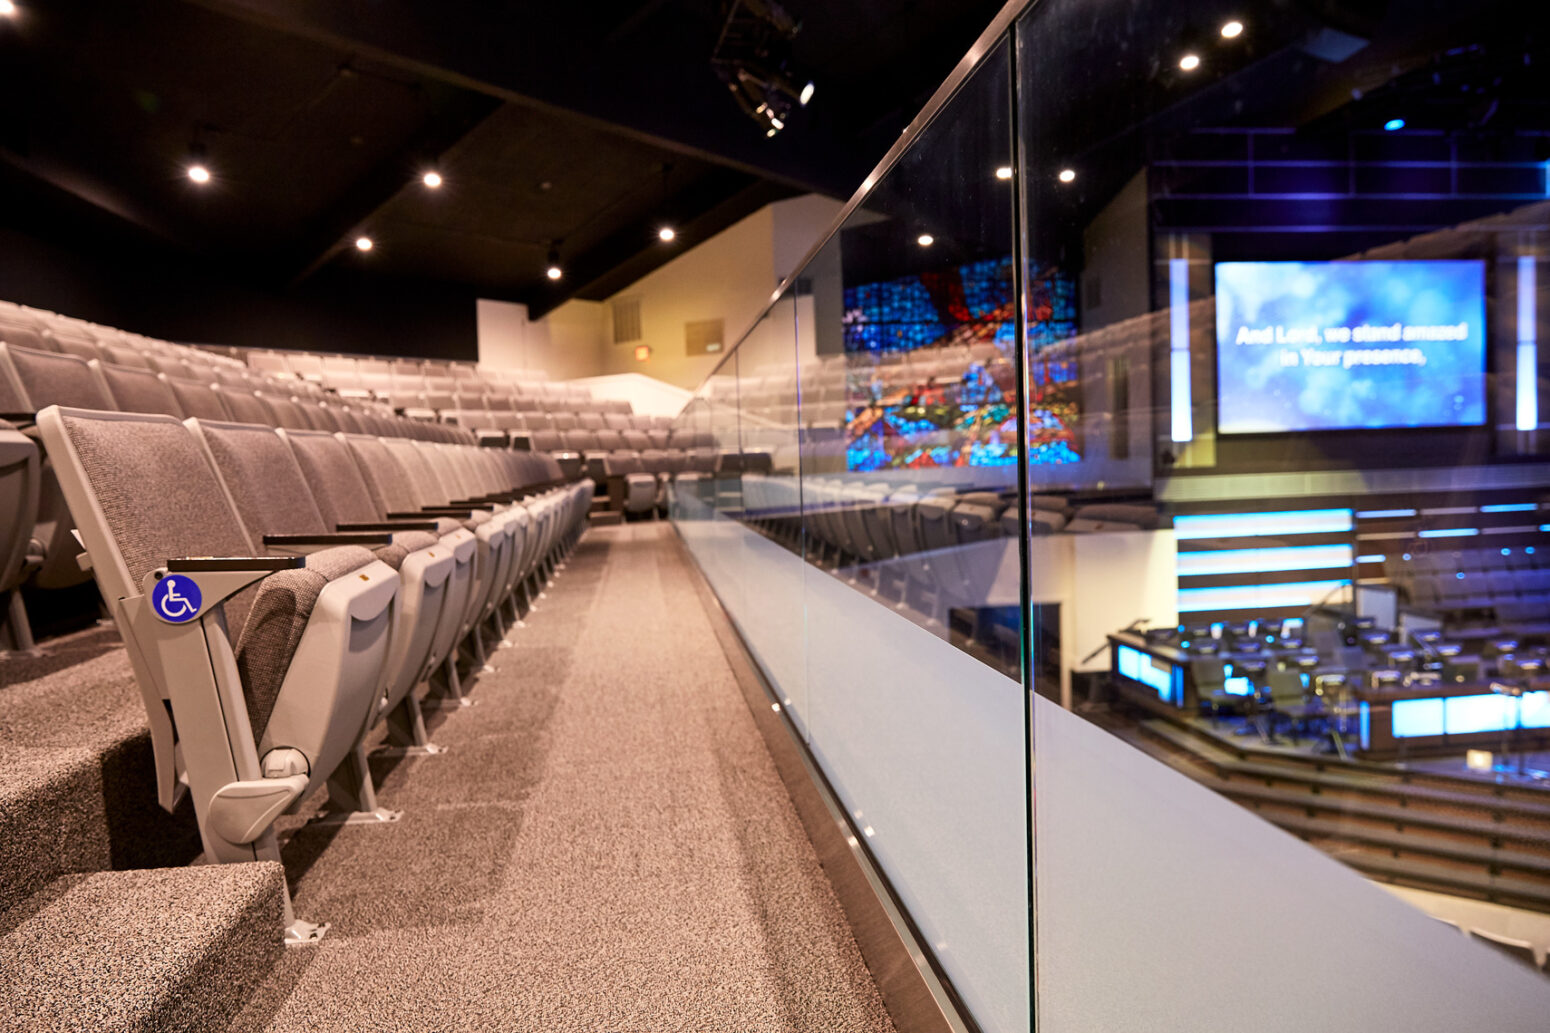 Church interior design and auditorium design expertise merge beautifully in this project.